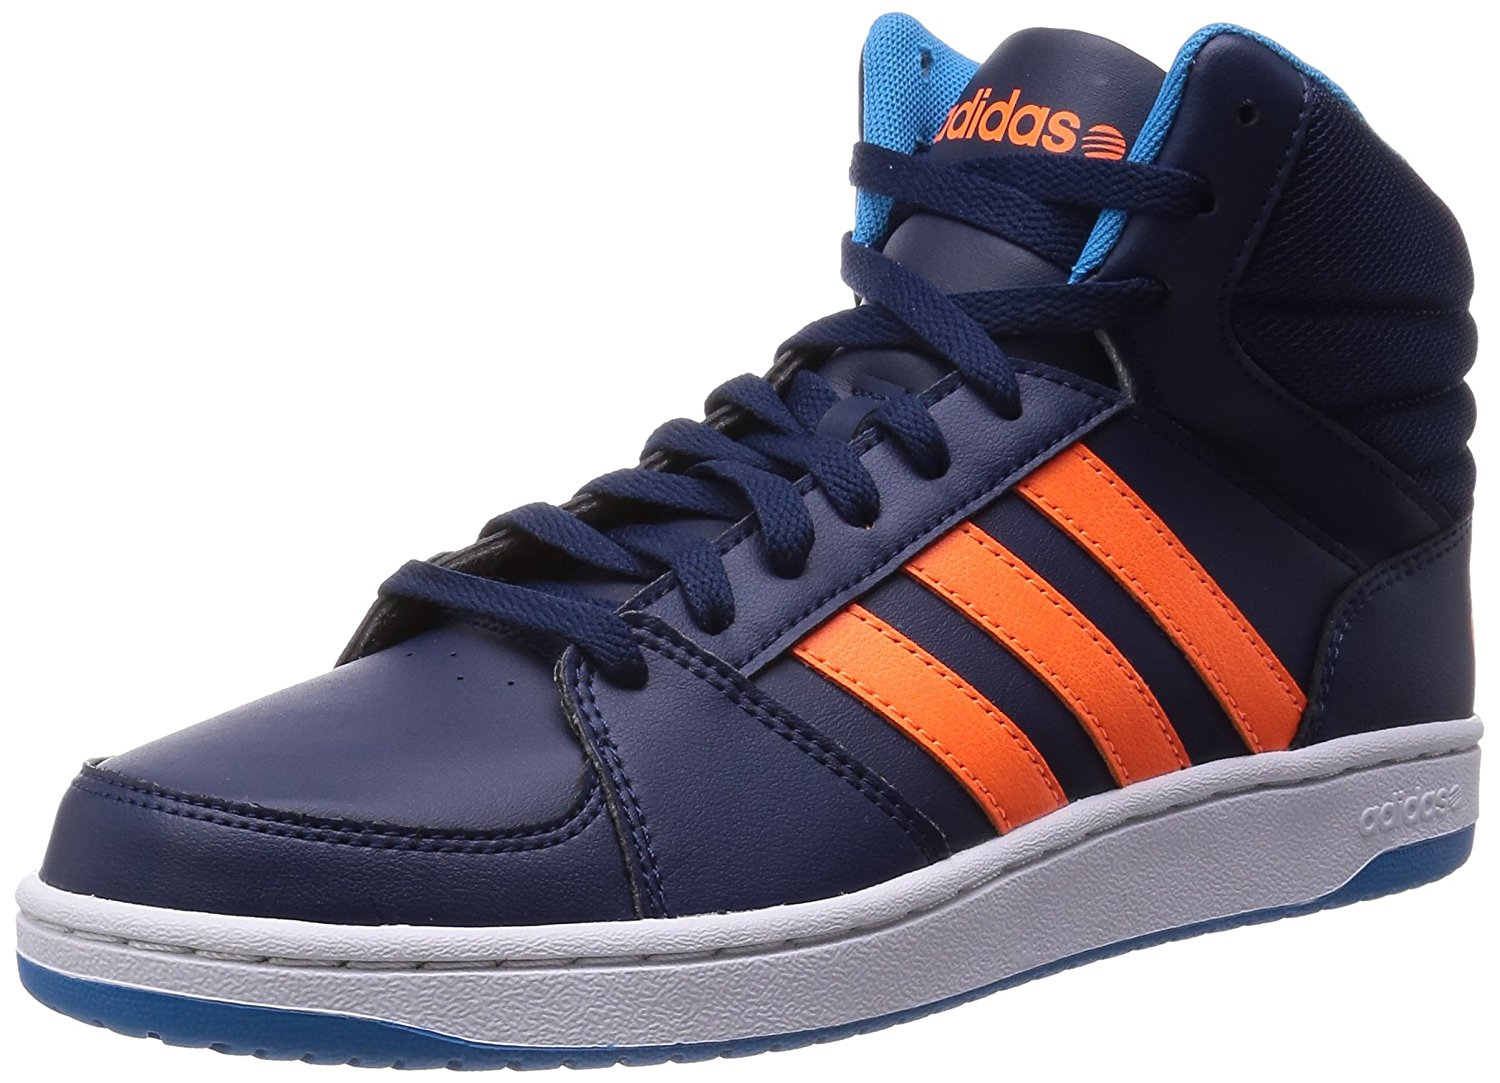 11179e087f6853 adidas NEO Herren High Top Sneaker Basketball Schuhe Trendschuhe HOOPS VS  MID